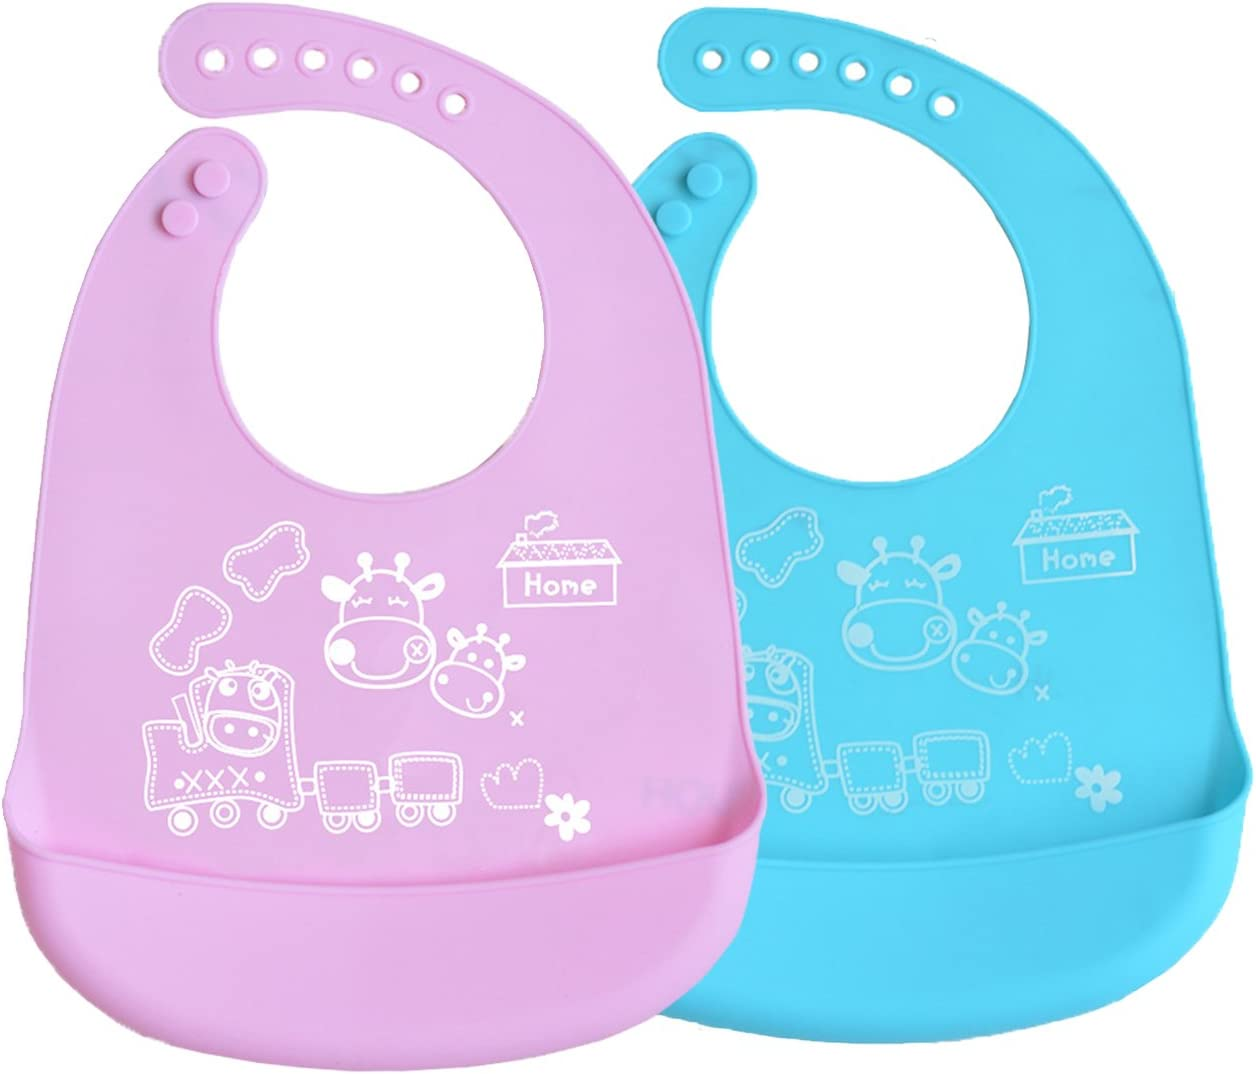 Adjustable Waterproof Silicone Toddlers Baby Bibs With Roll Up Pocket Soft